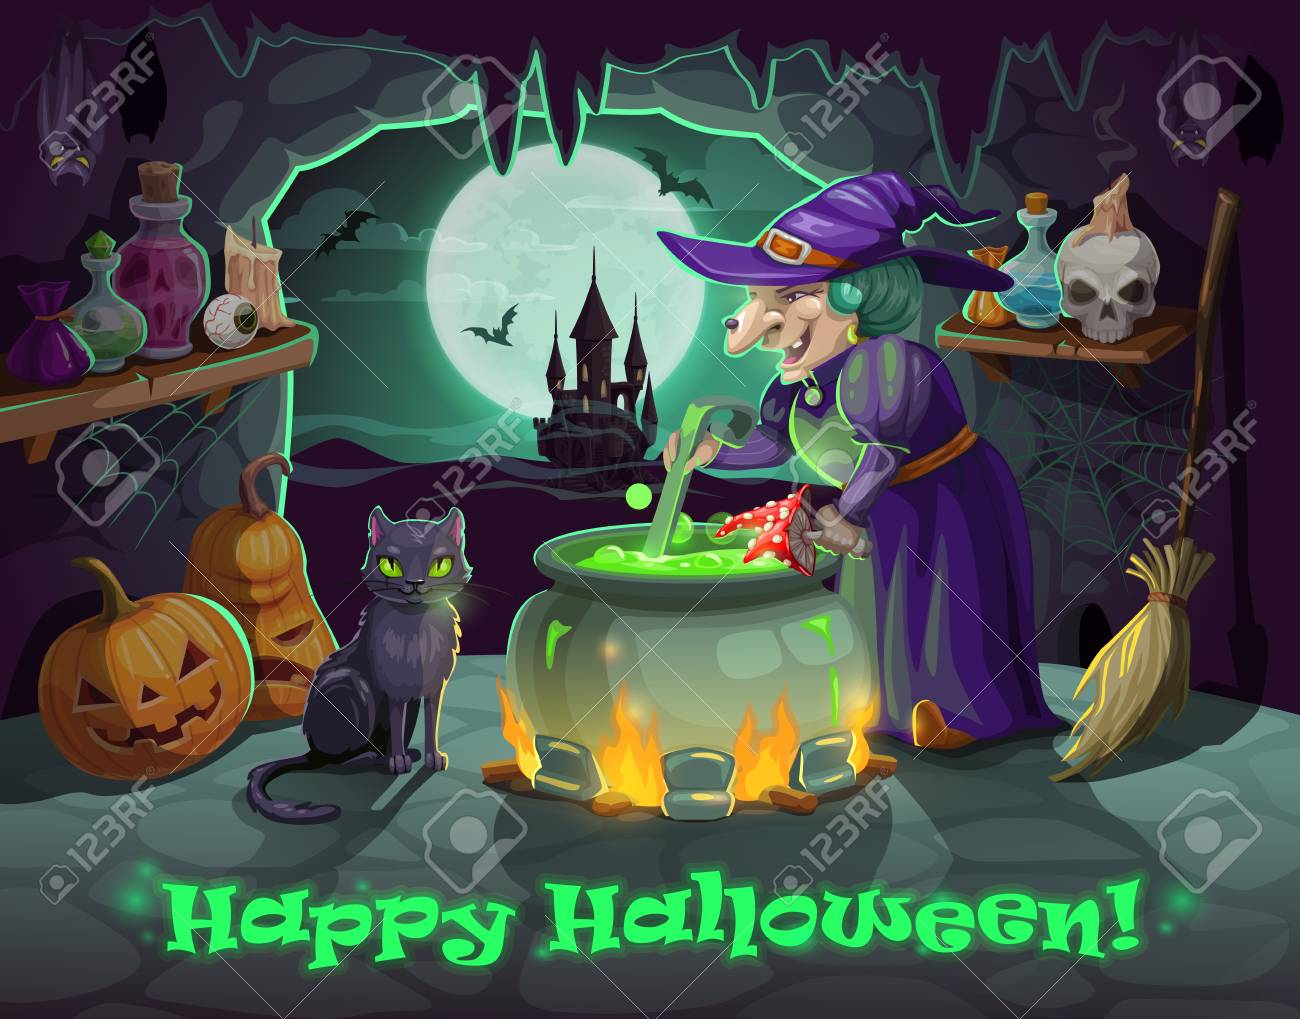 Halloween Holiday Witch And Black Cat Cauldron With Potion Royalty  Free Cliparts Vectors And Stock Illustration Image 110063116